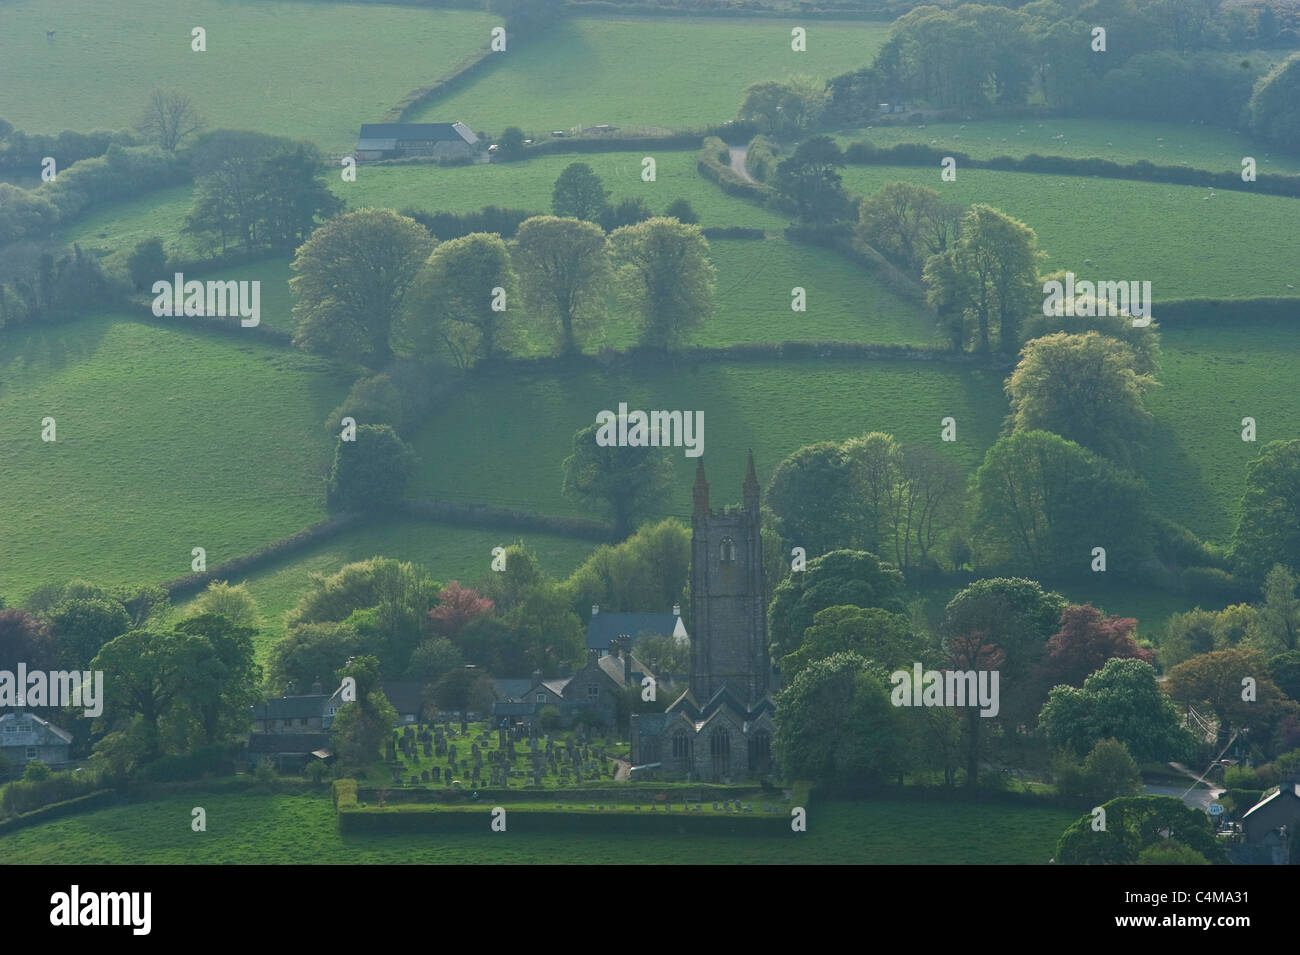 The 'Cathedral of the Moor' church in the village of Widecombe-in-the-Moor in Dartmoor National Park. - Stock Image